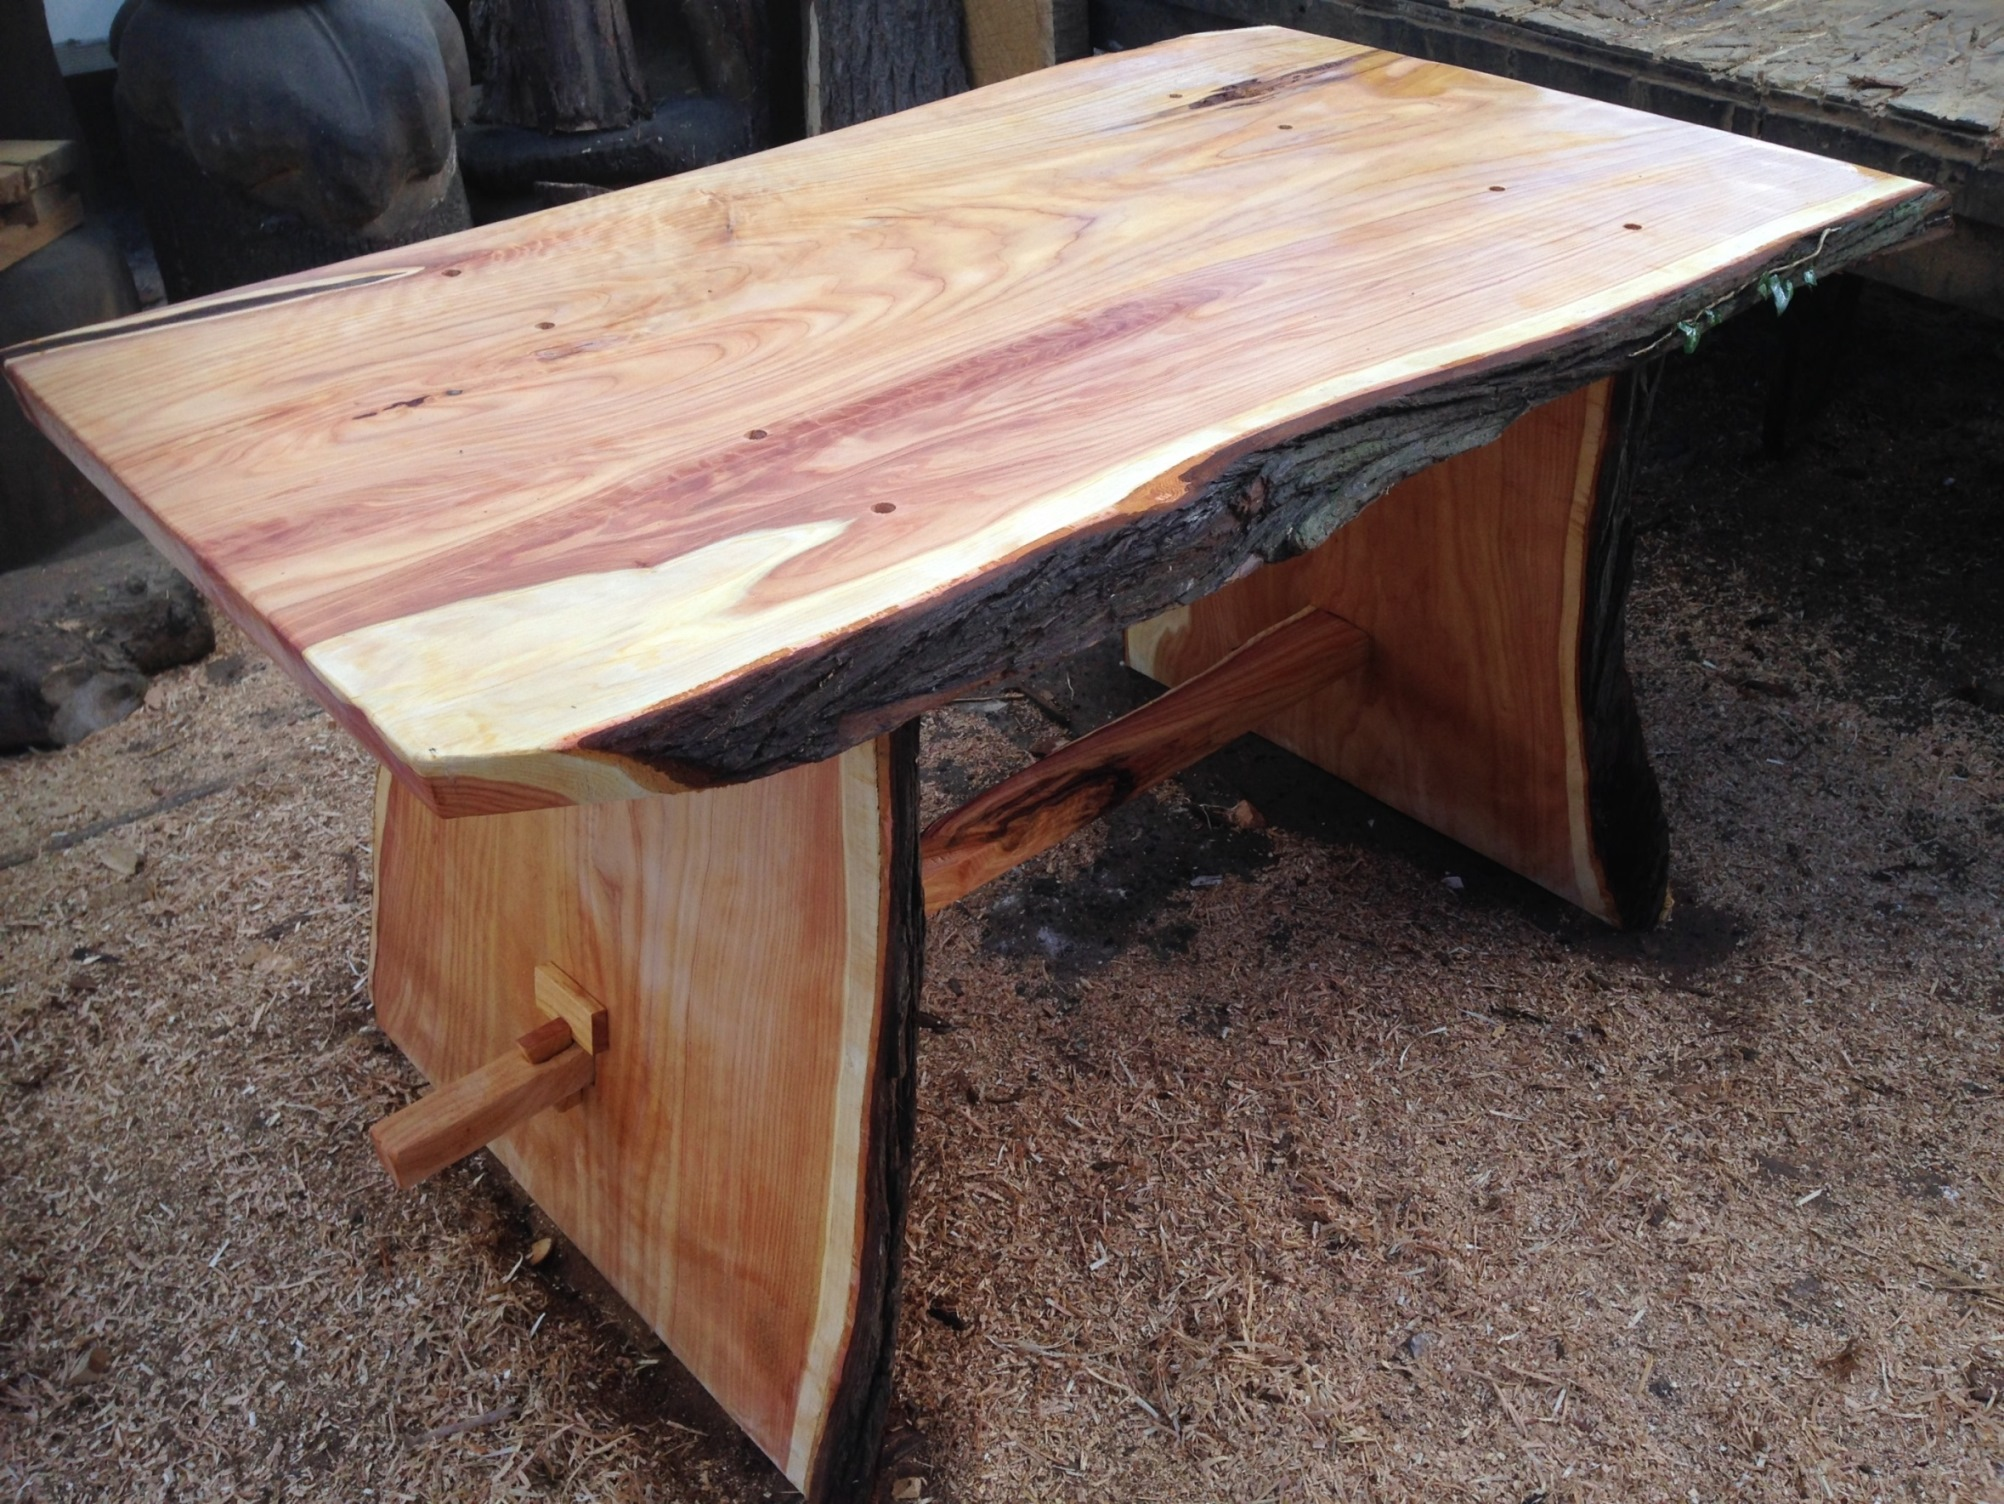 20150512 Table and Bench making (5).JPG